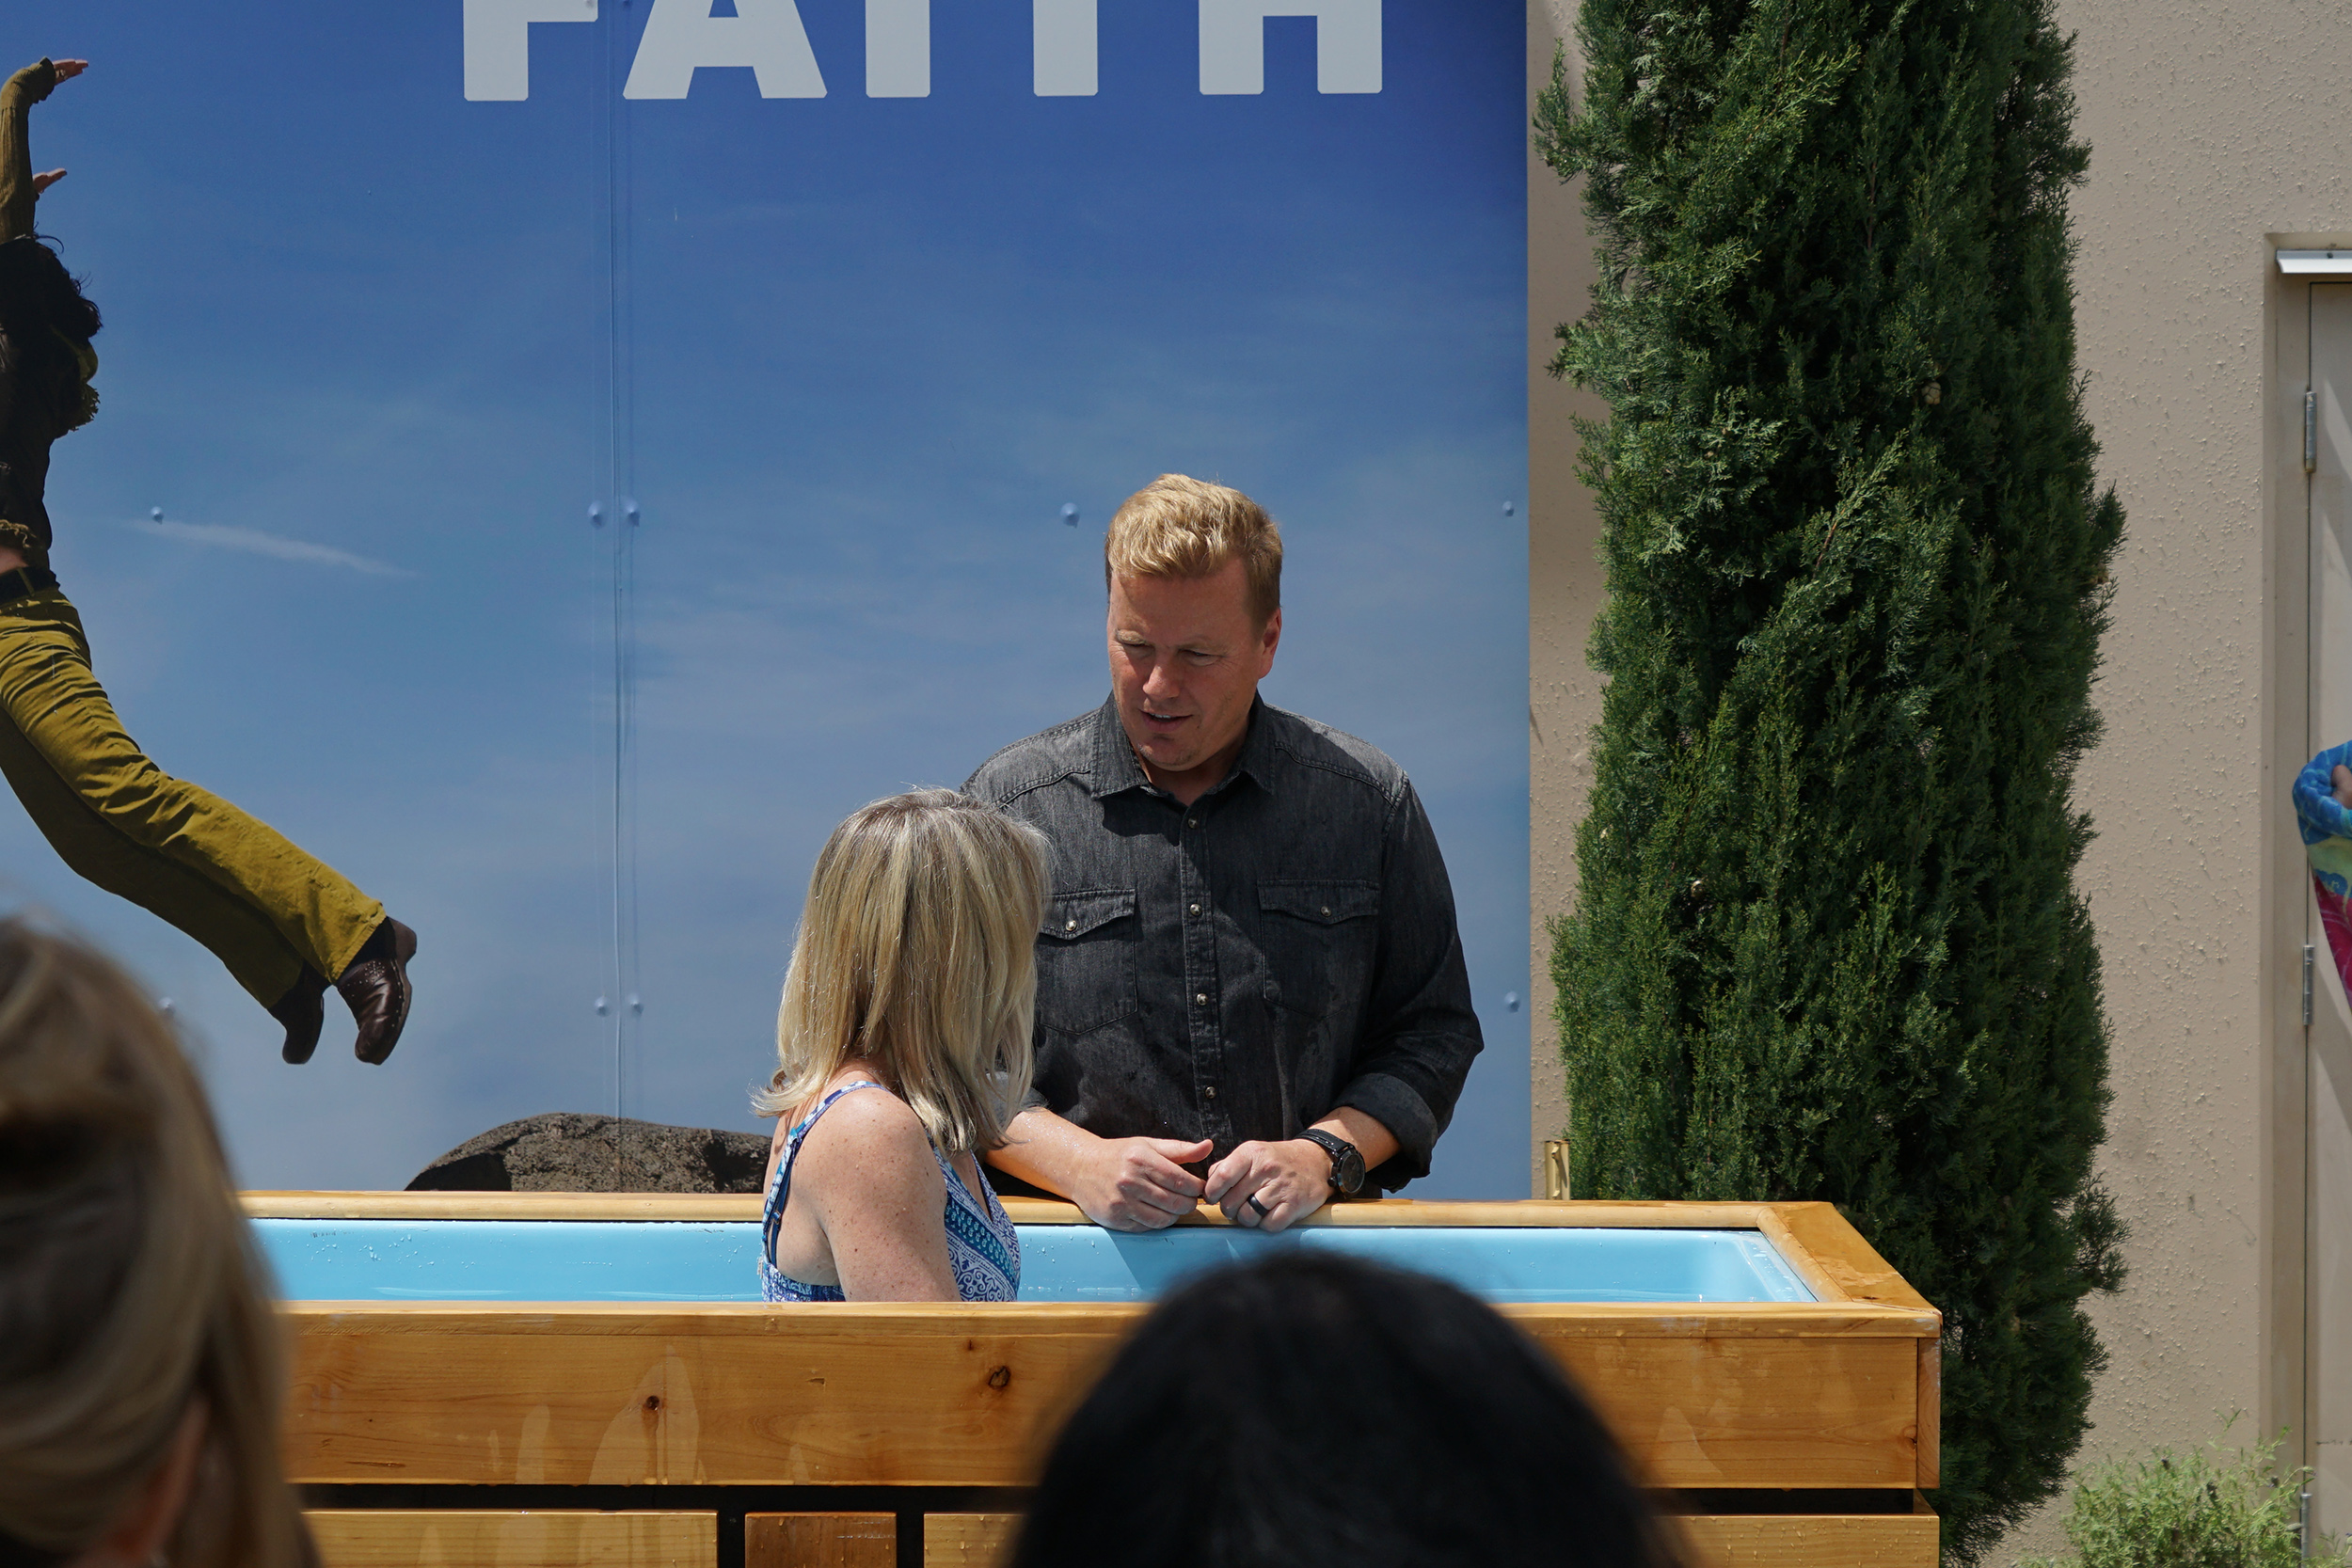 BAPTISM & CHILD DEDICATION - If you are interested in getting baptized or having your child dedicated, please contact Will Derryberry.